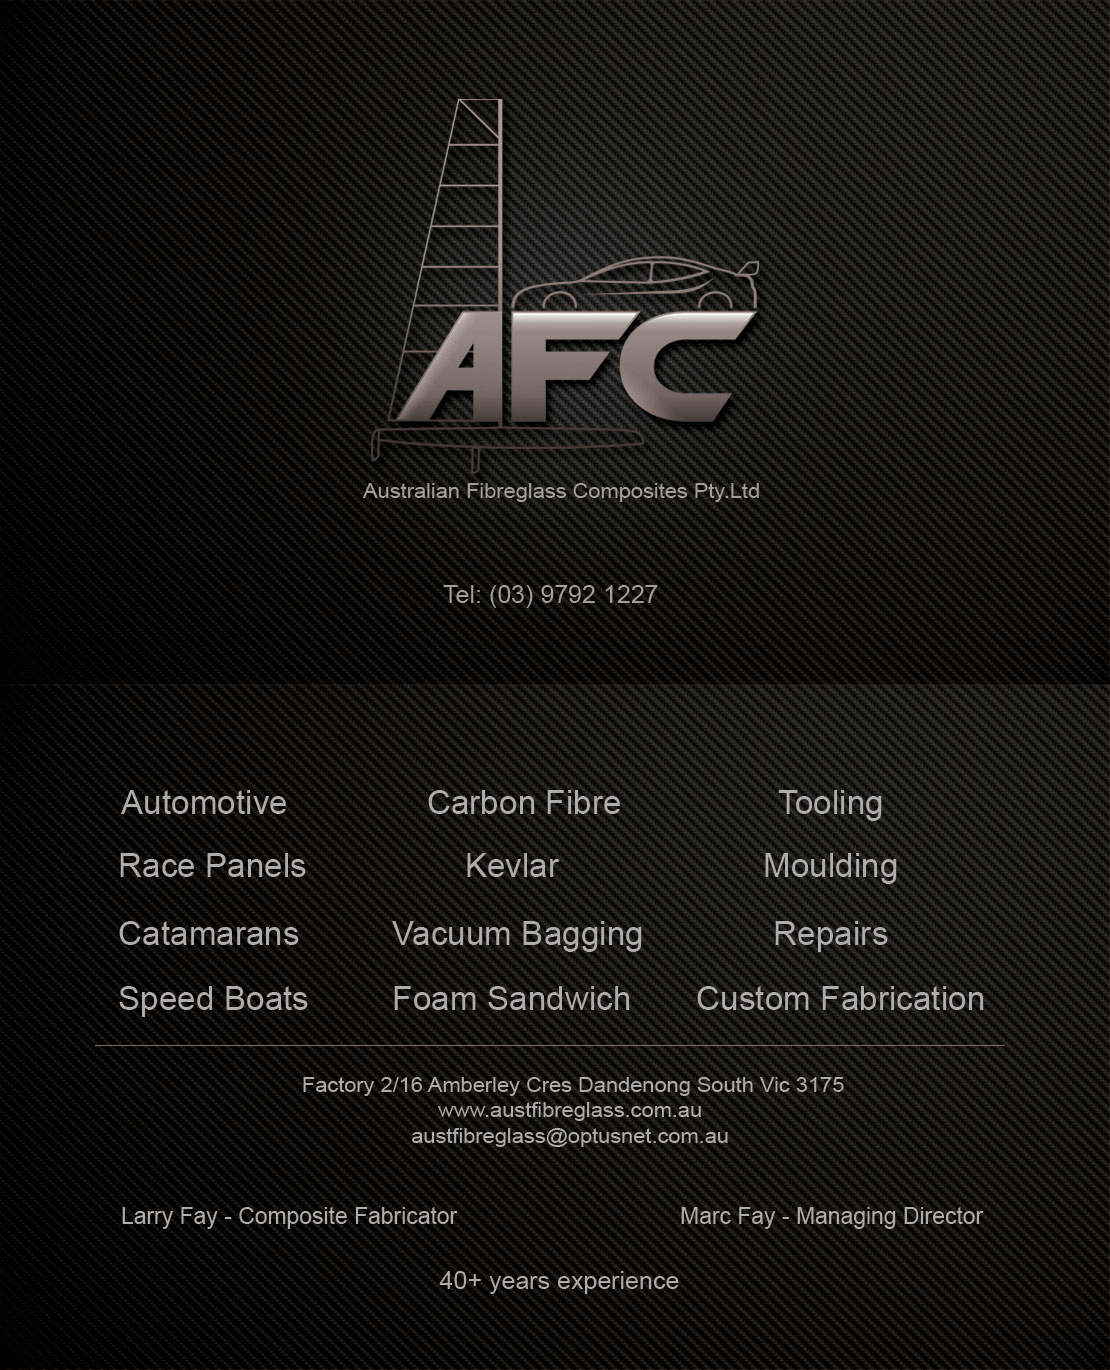 Automotive business card design for australian fibreglass composites automotive business card design for australian fibreglass composites in australia design 3106256 reheart Gallery